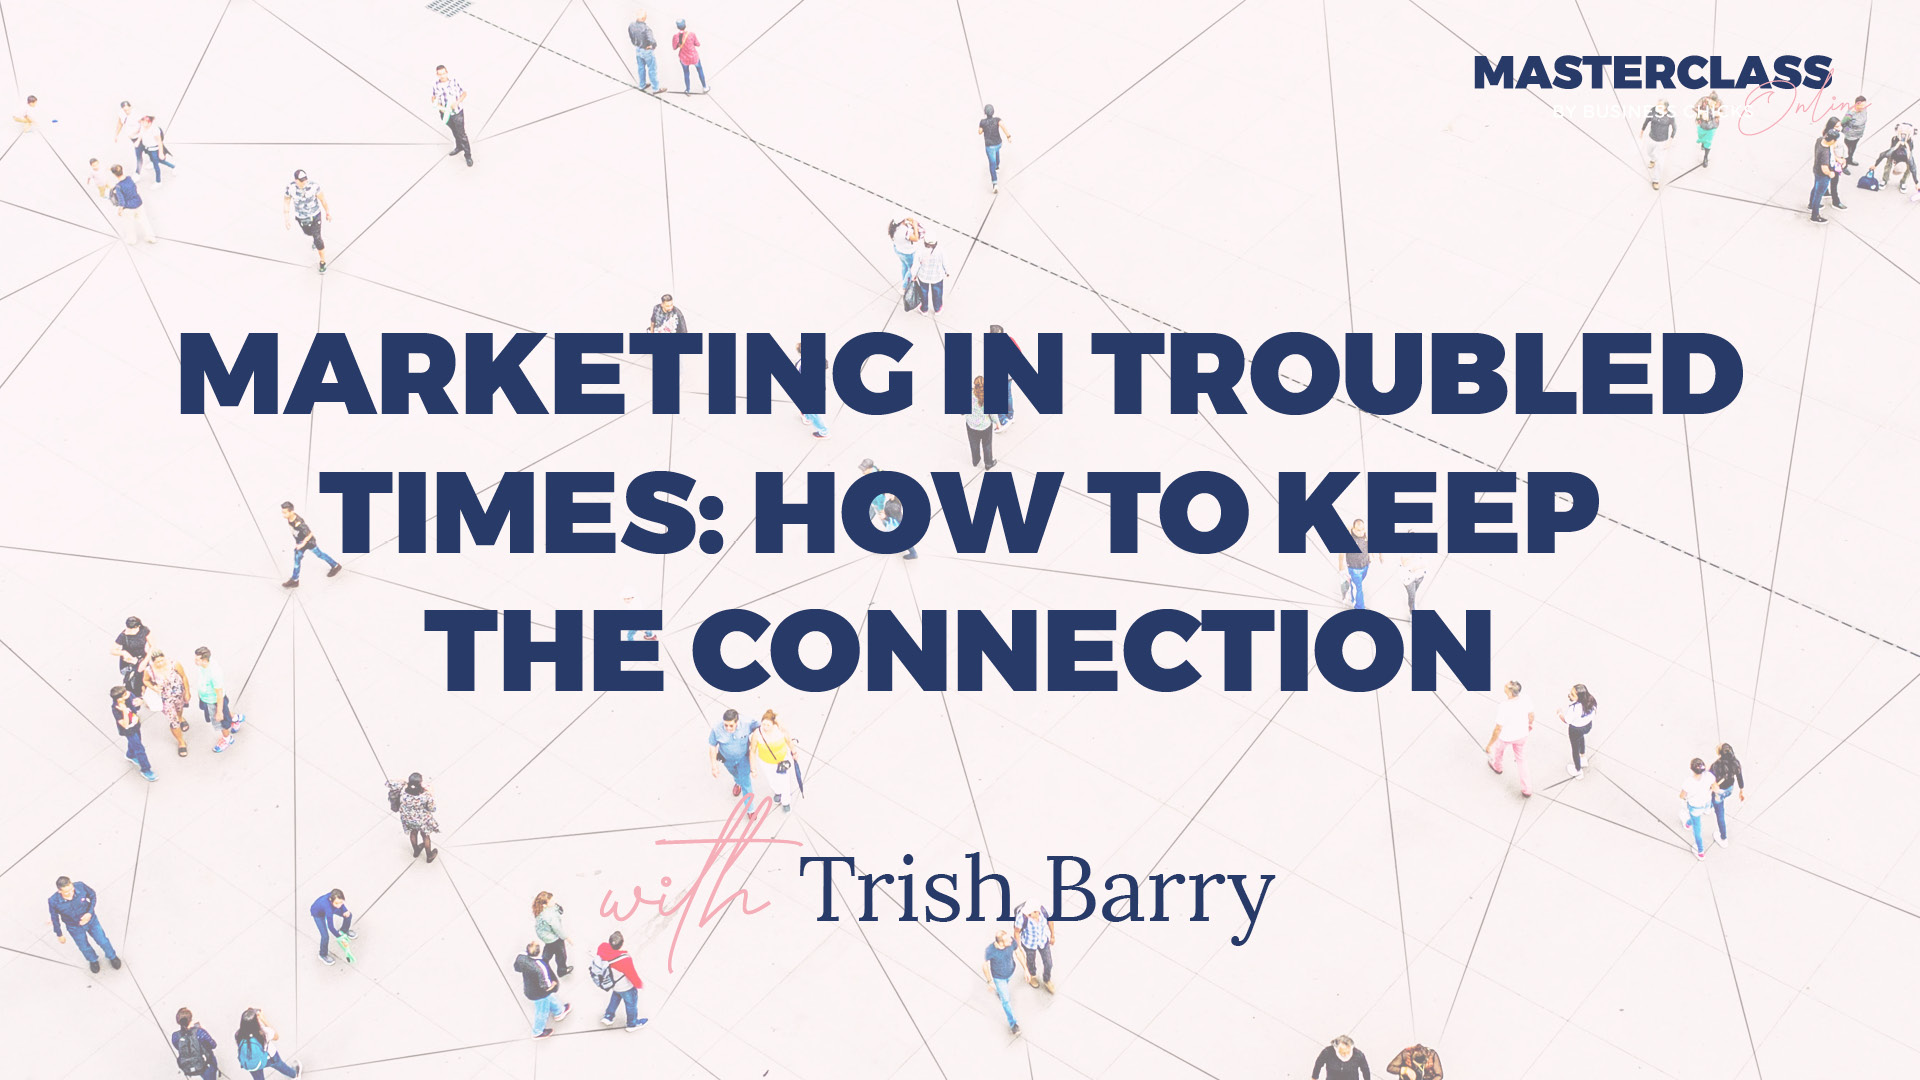 Masterclass: Marketing in Troubled Times: How to Keep the Connection